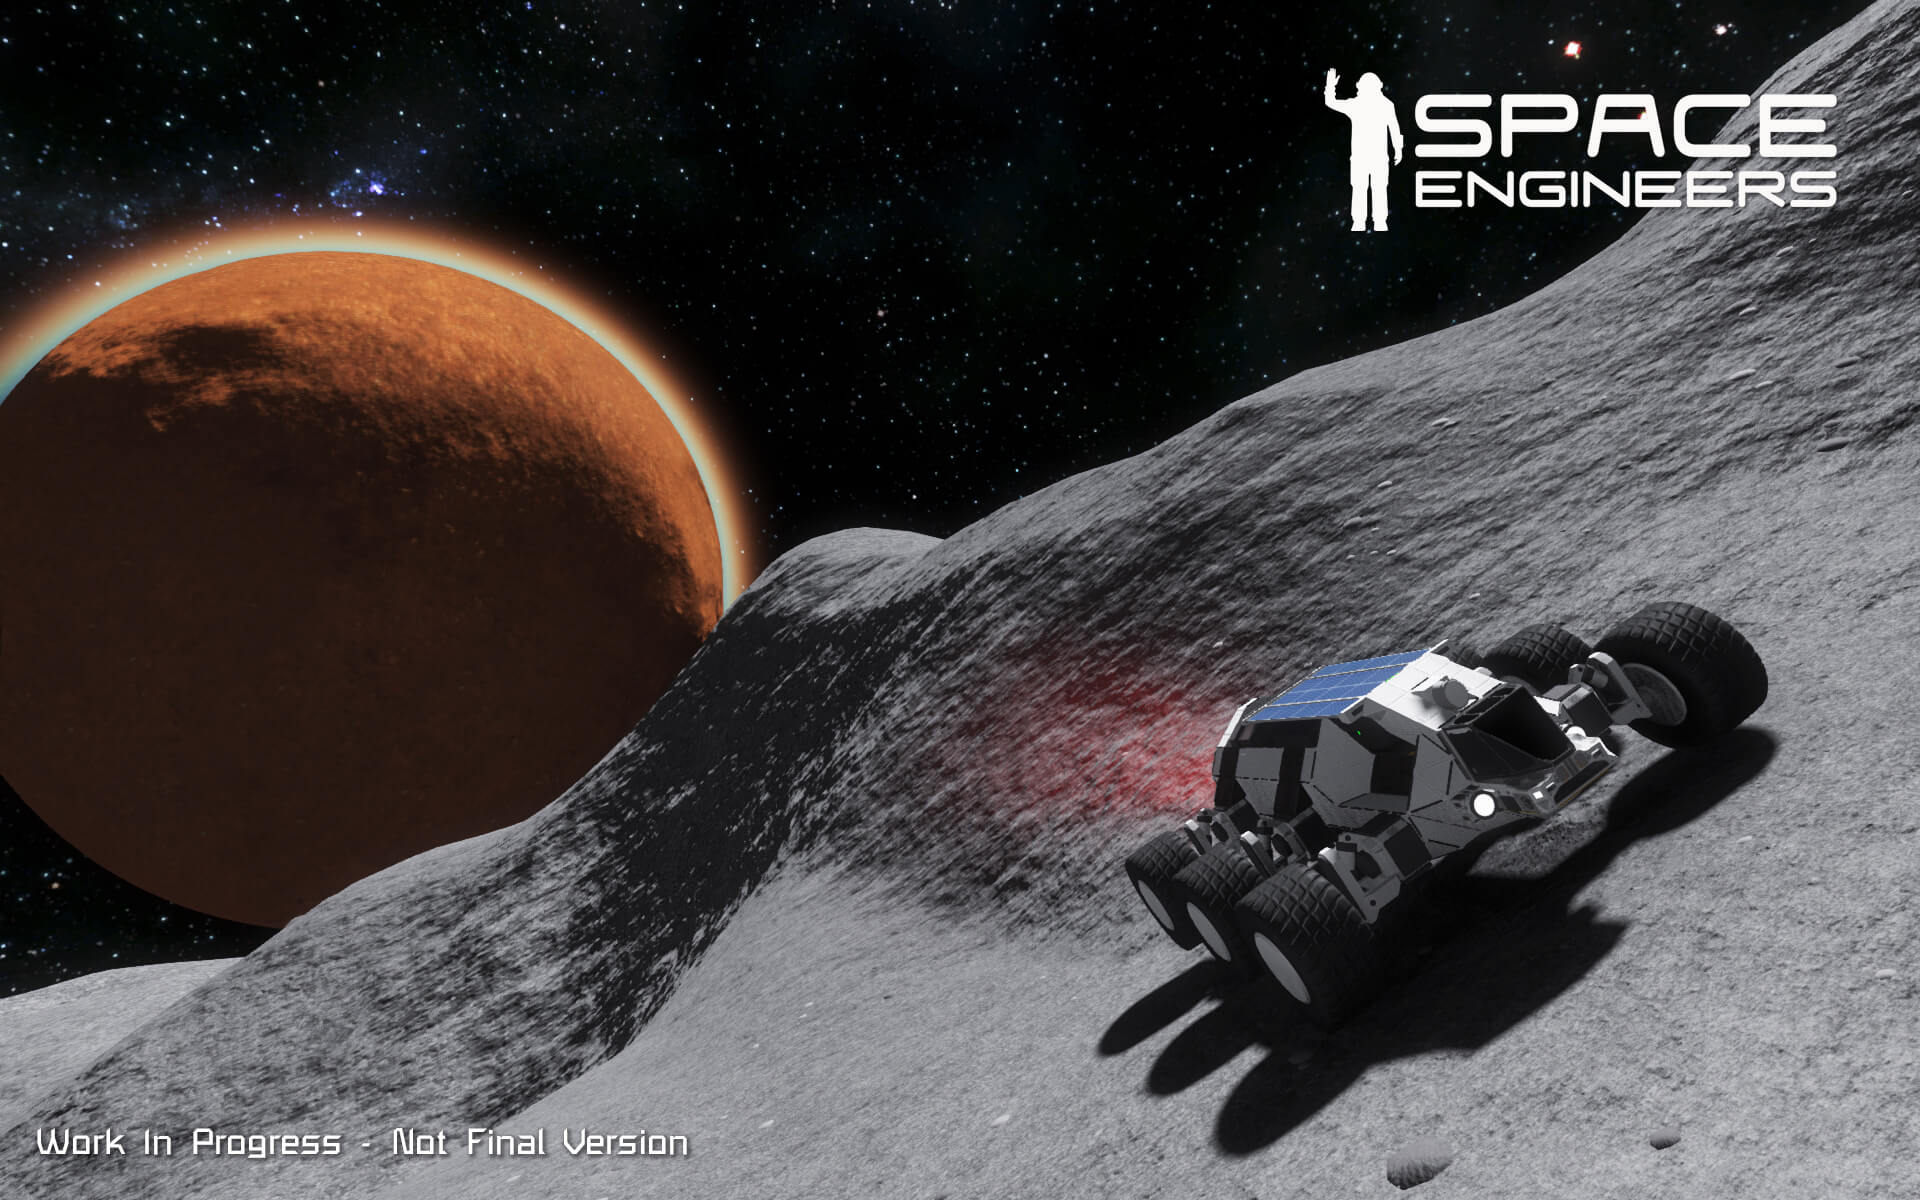 Space Engineers Screens And Video Released